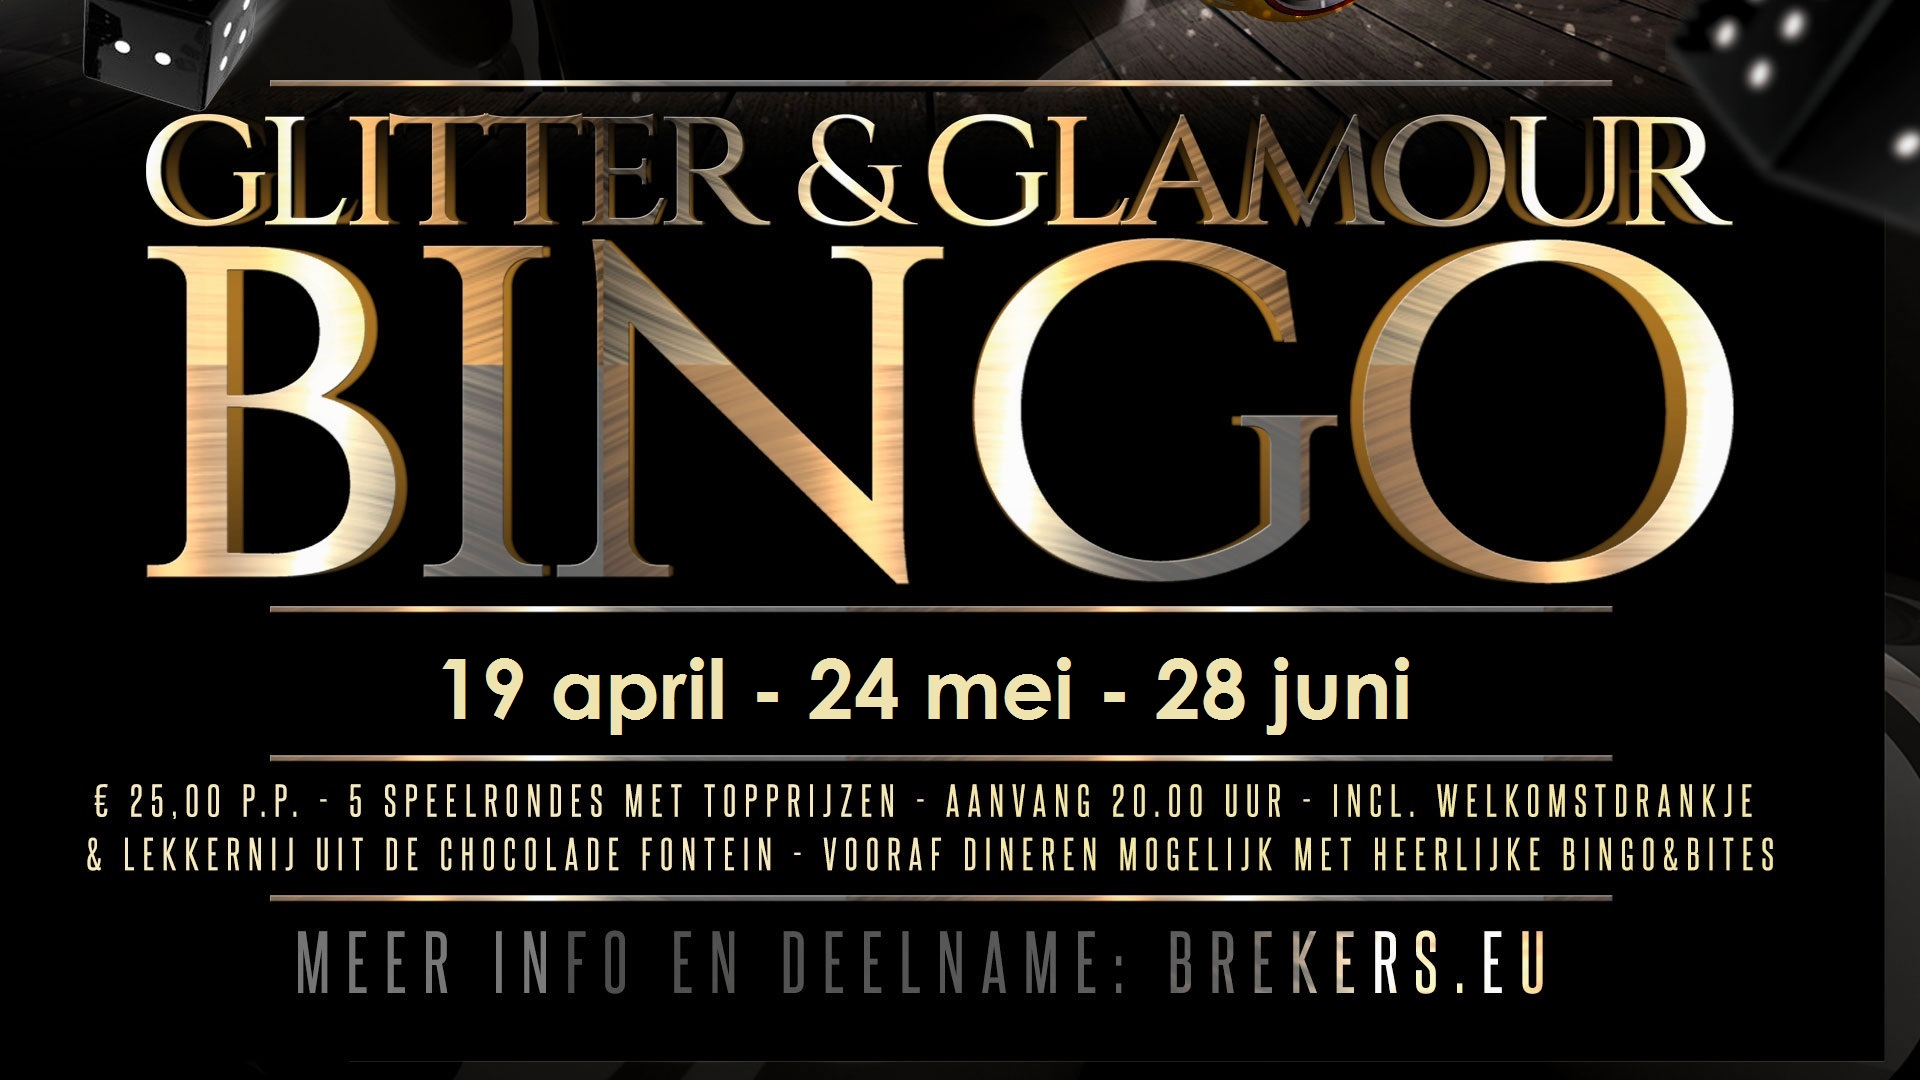 Glitter & Glamour Bingo 19 april